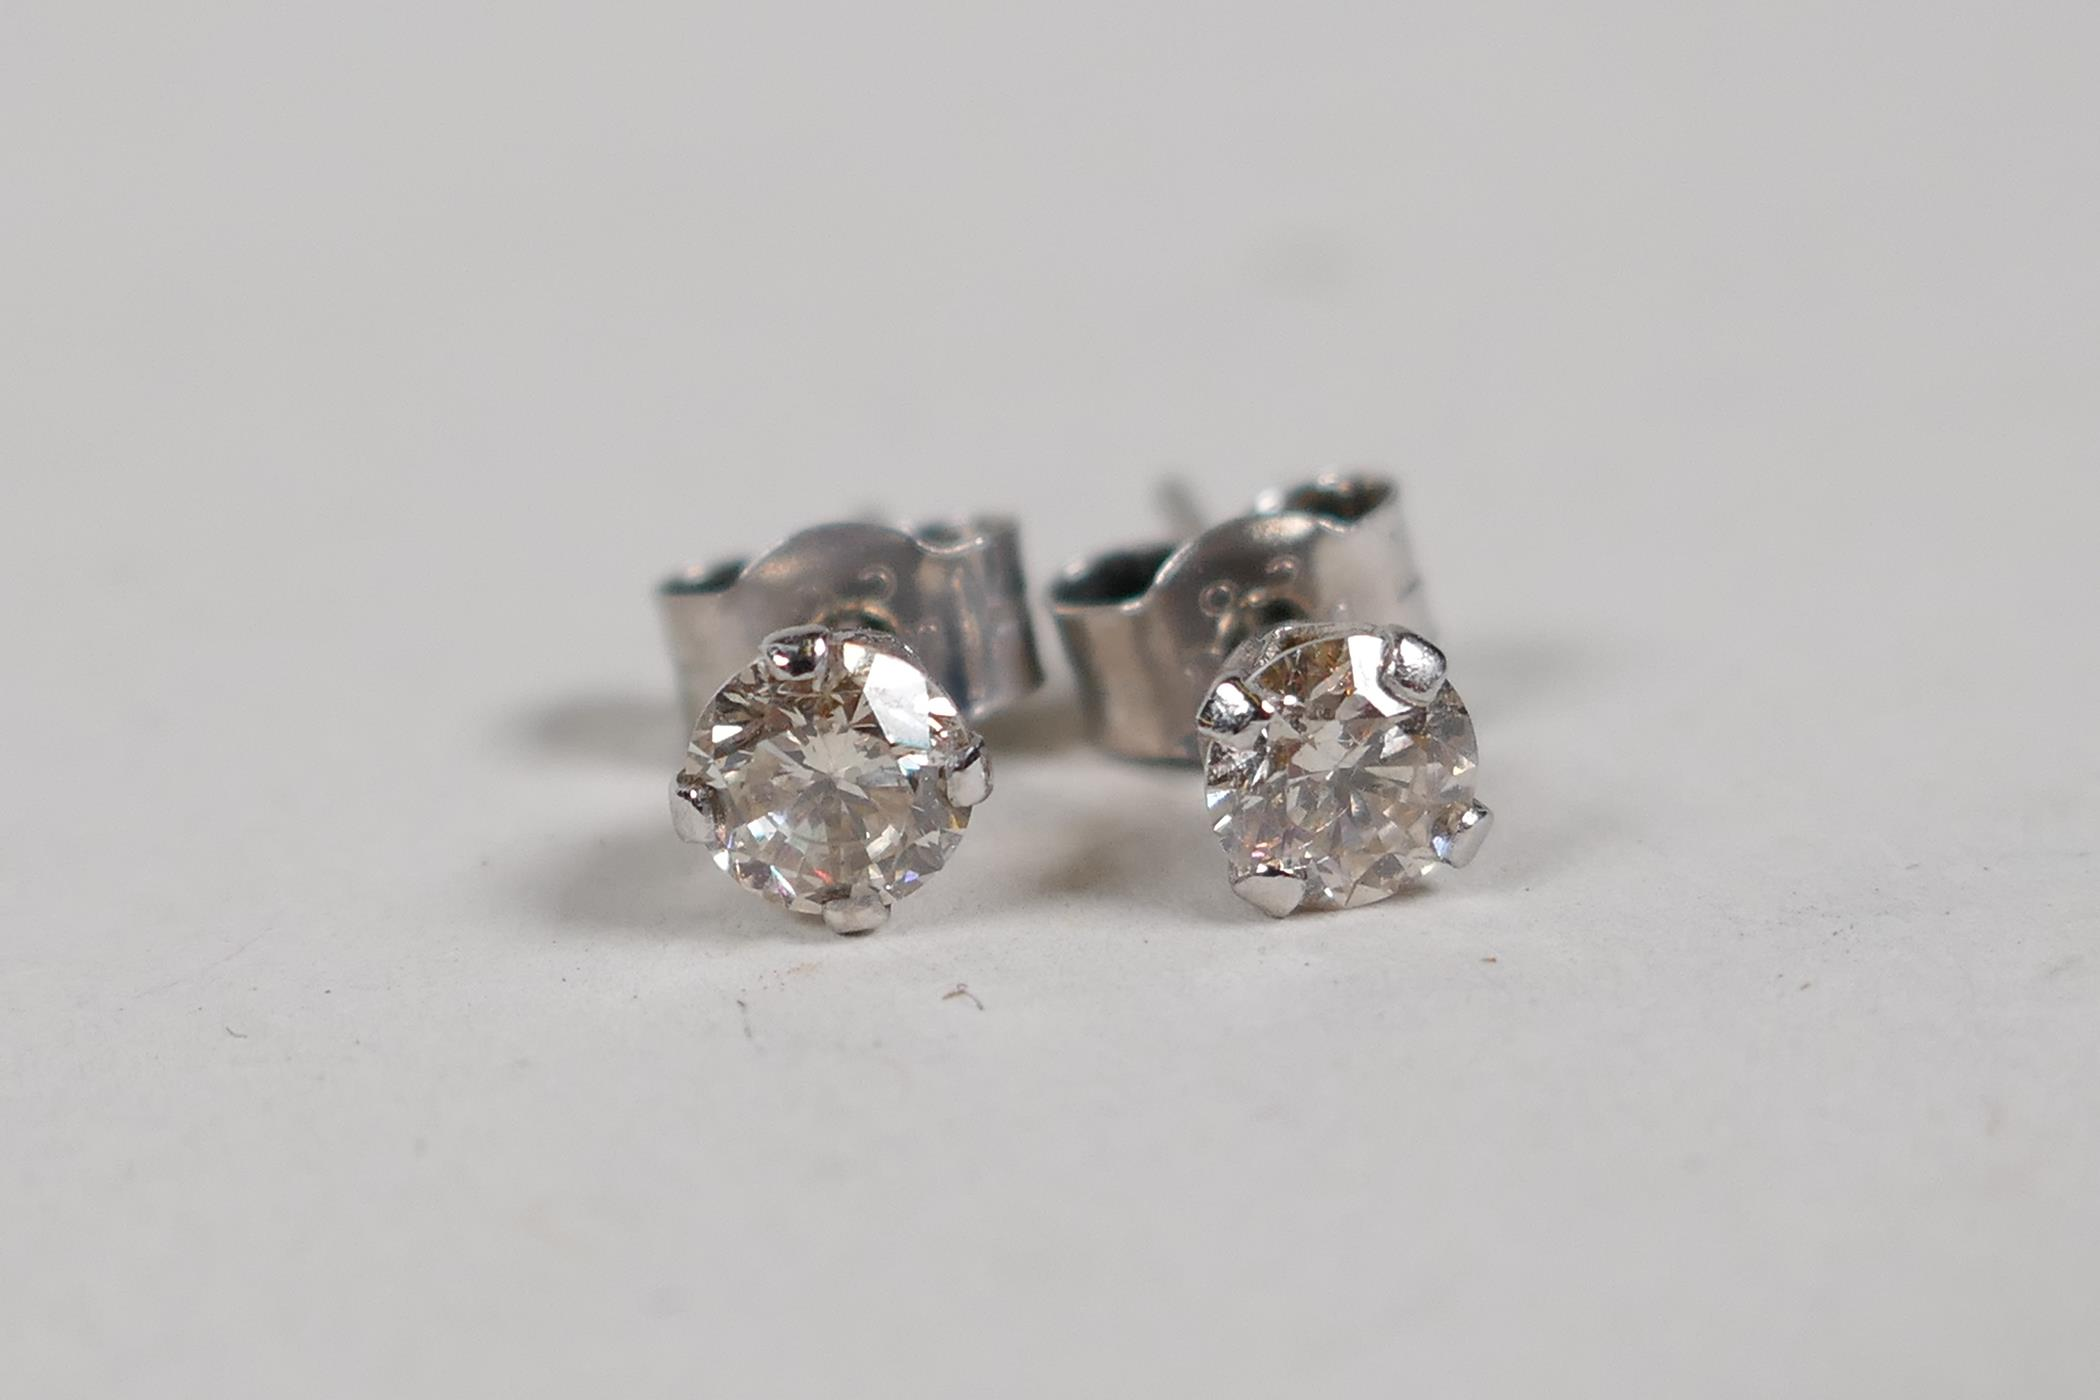 A pair of 14ct white gold diamond stud earrings, approx 0.5ct